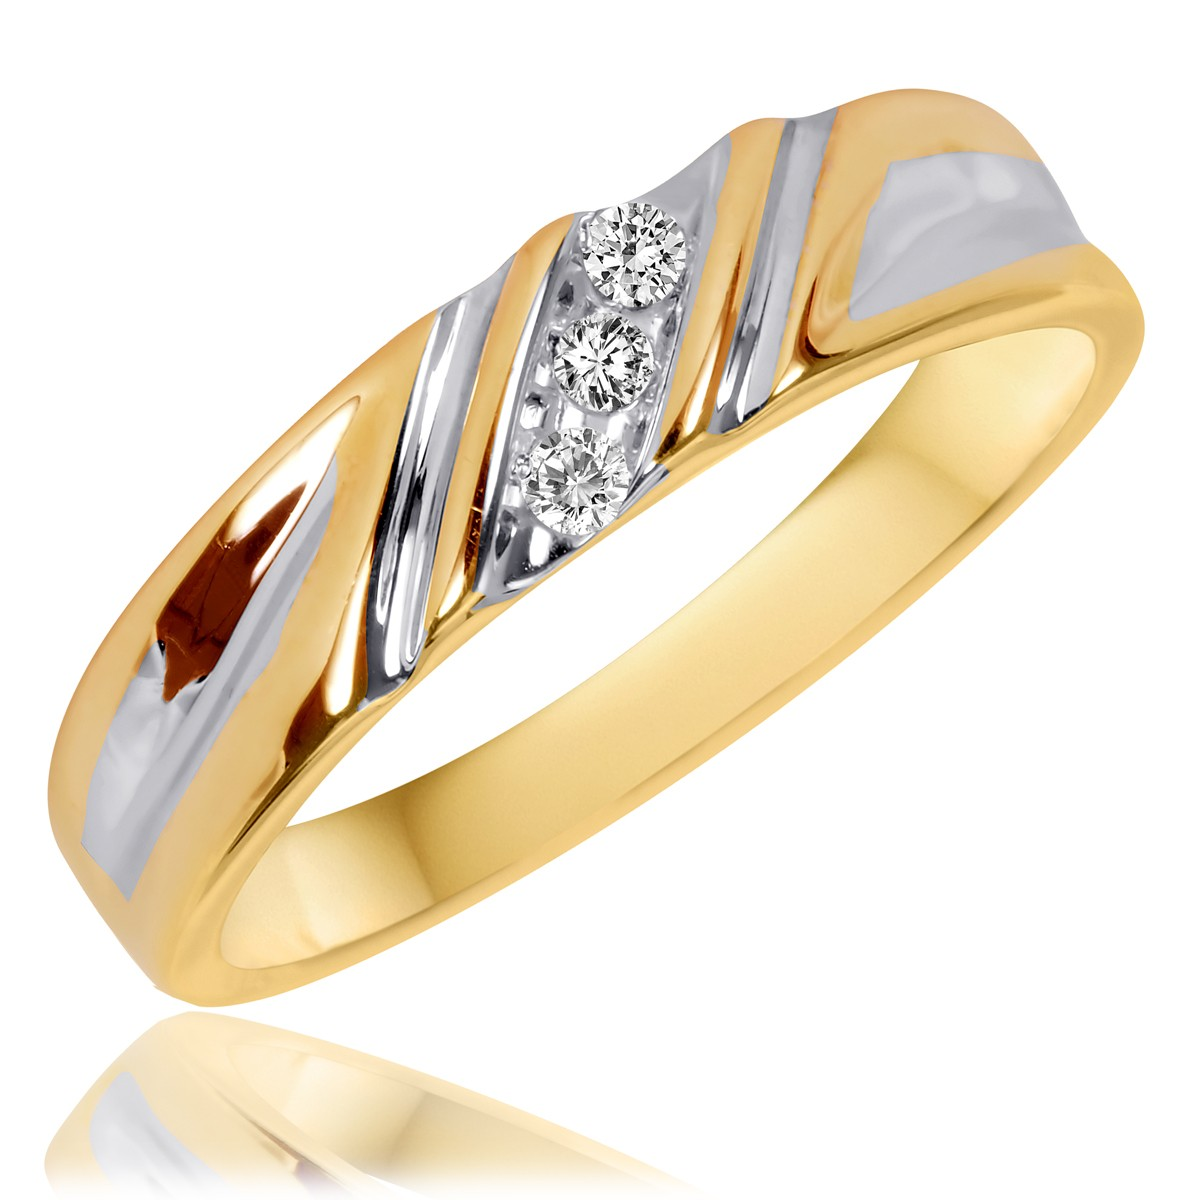 1/20 Carat T.W. Diamond Men's Wedding Band 14K Yellow Gold